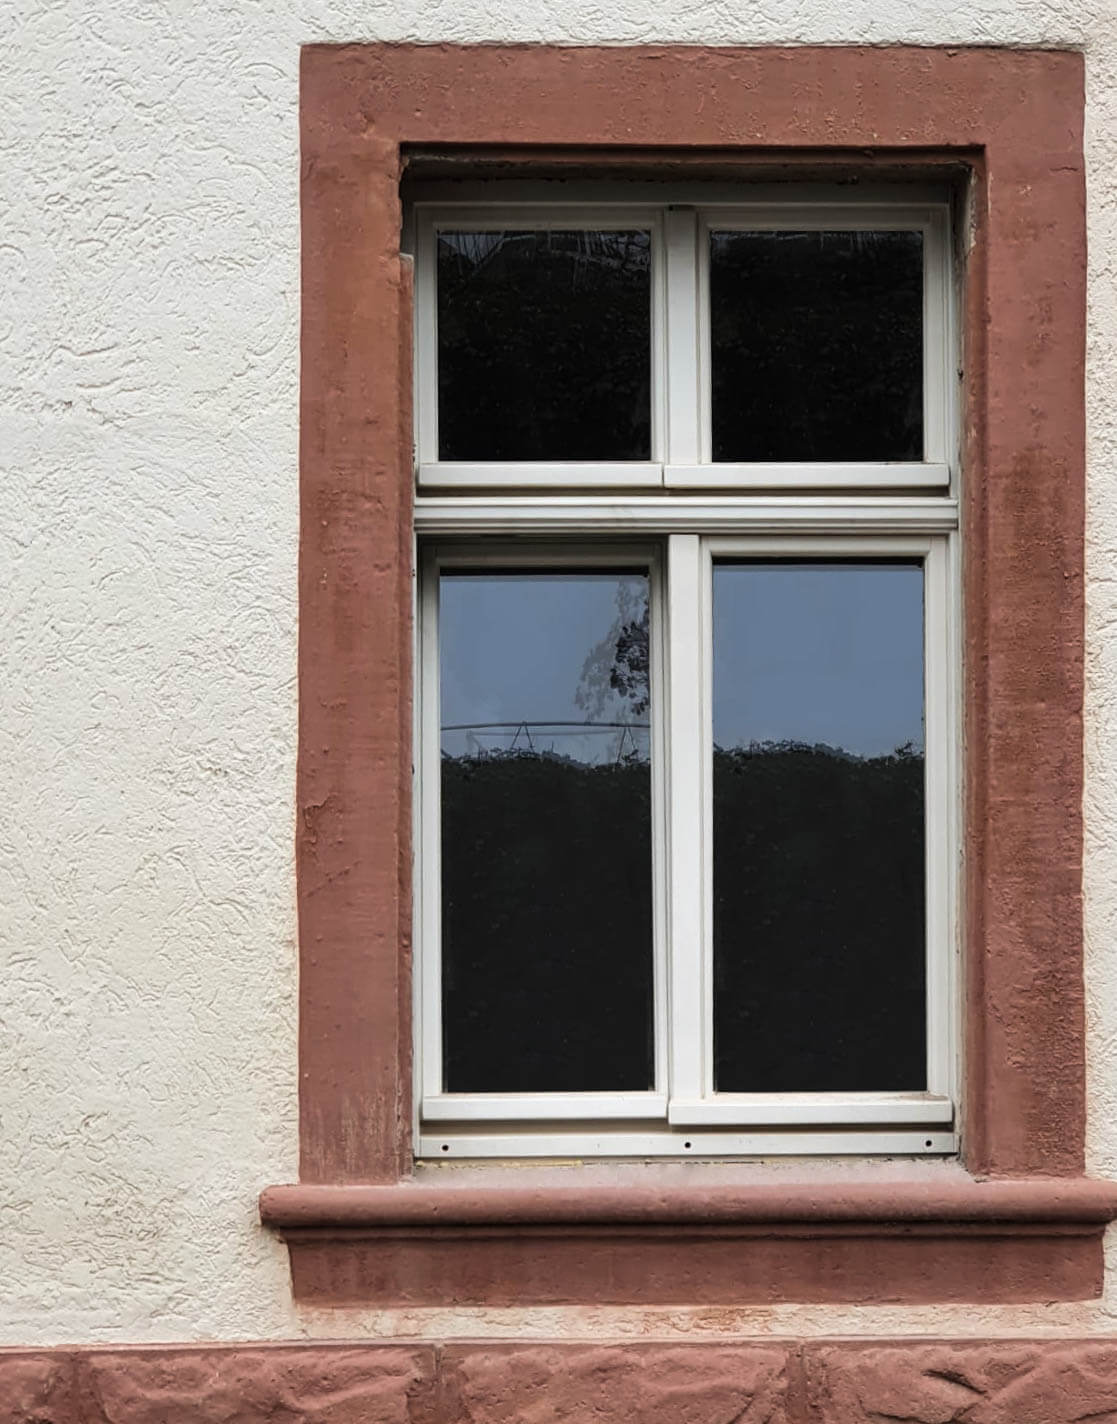 windows for historic buildings denkmalschutz